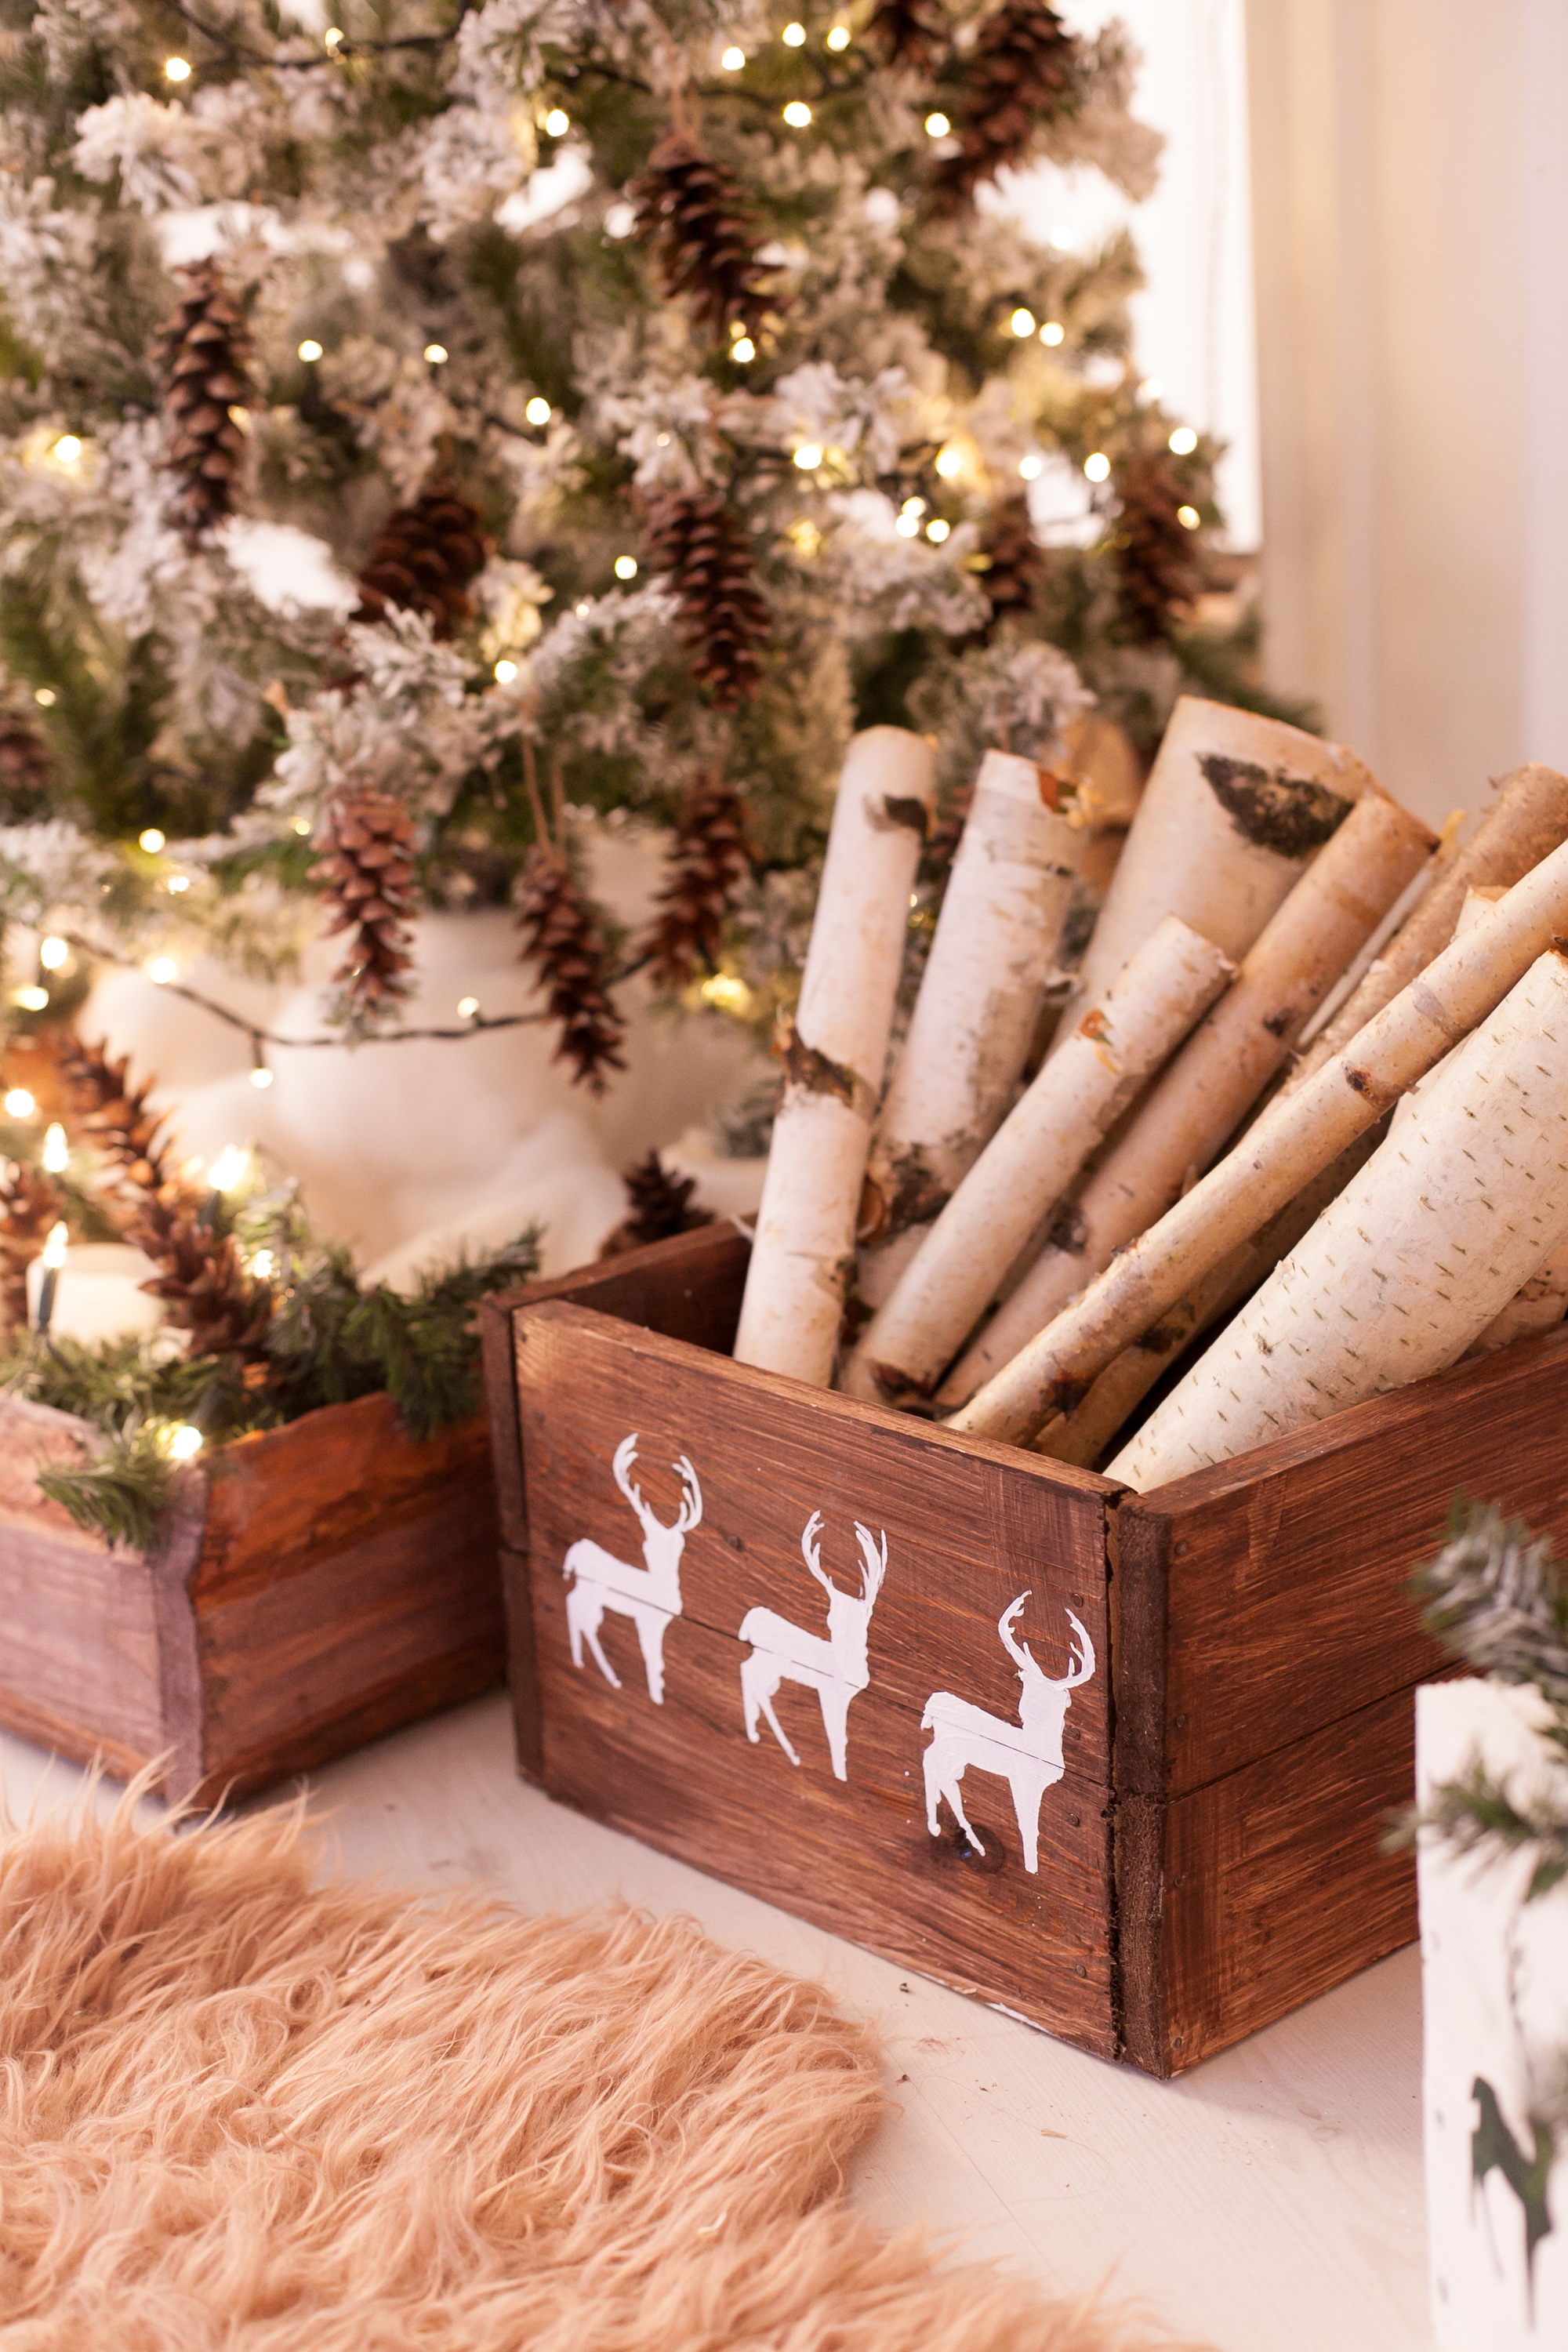 If you love rustic Christmas decor, you will love these birch wood Christmas decor ideas. They are so cute and easy to make. Birch Christmas Craft Decorations